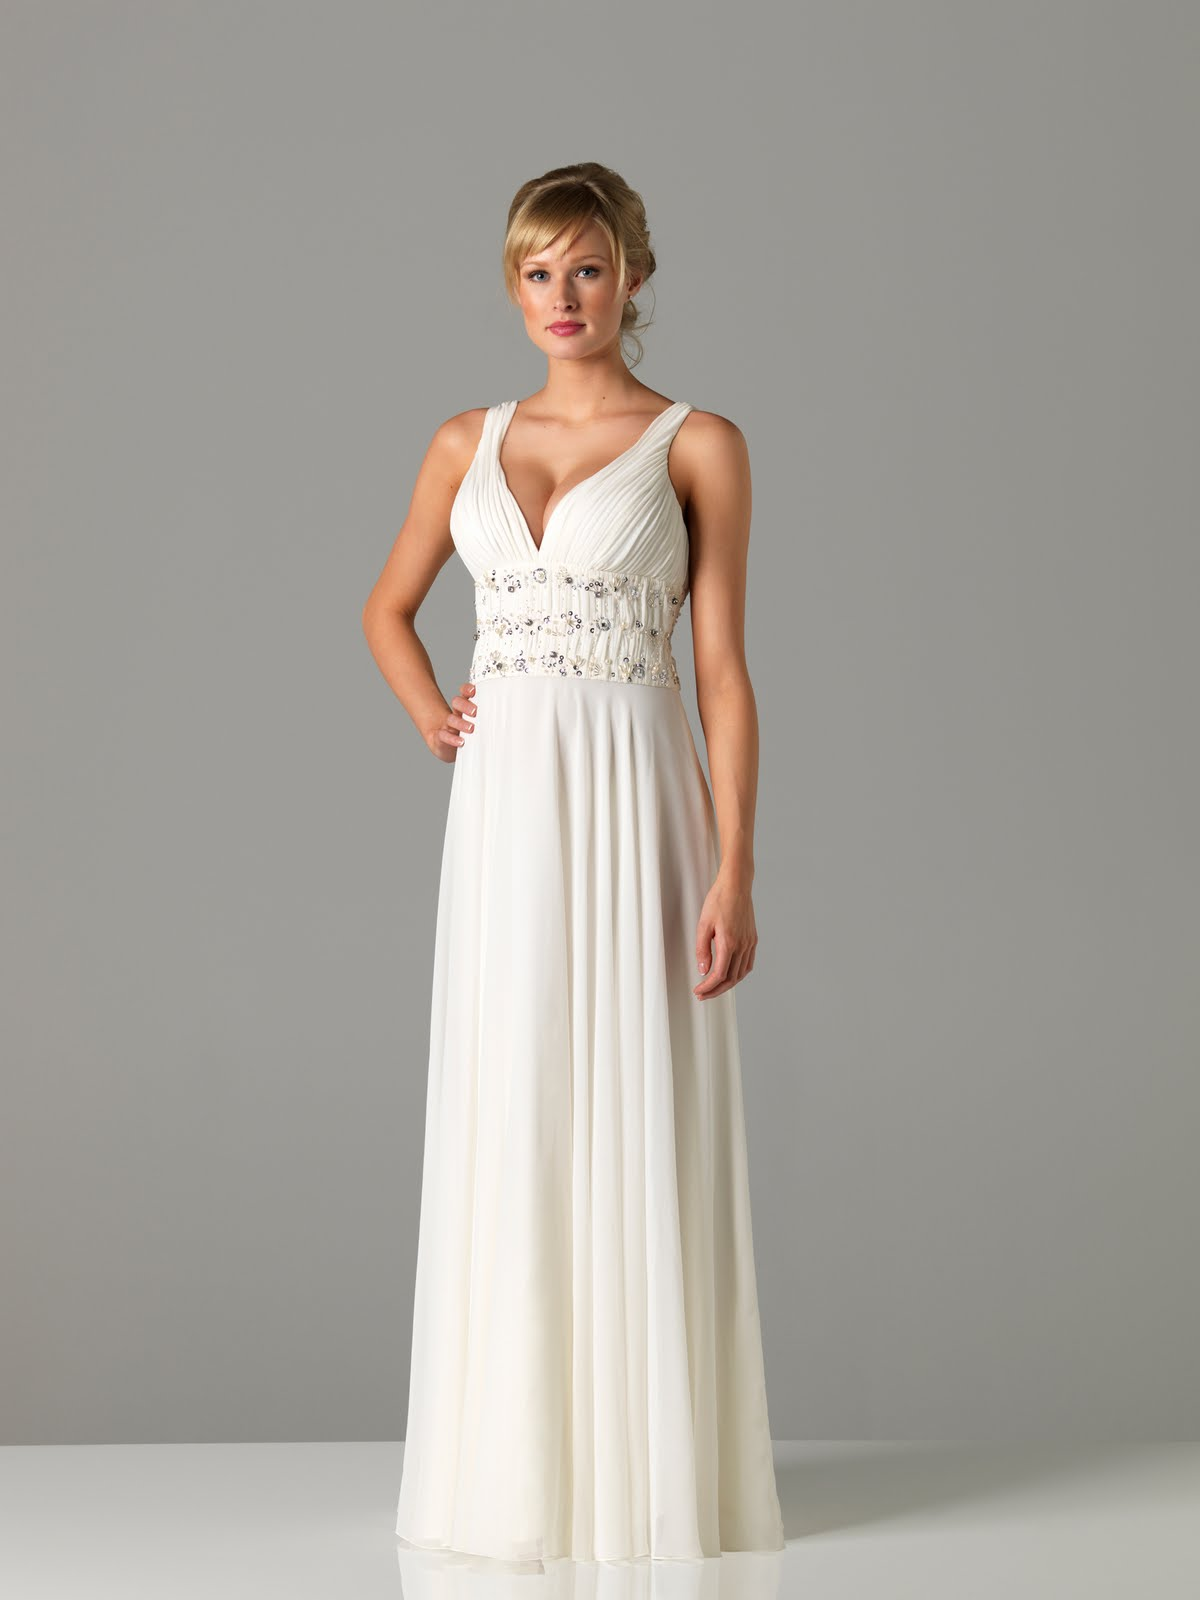 Amberly 39 s blog simple country wedding dress Simple country wedding dress ideas